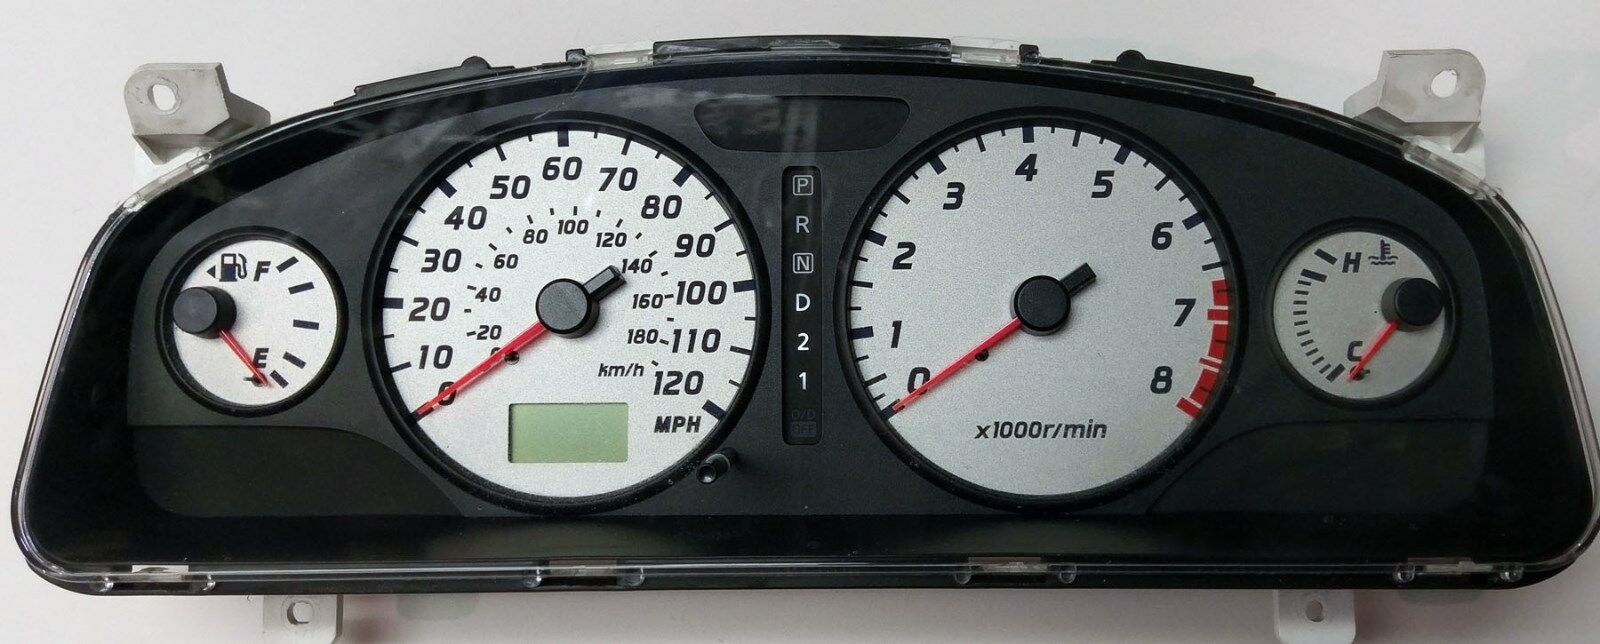 02 03 04 Nissan Pathfinder Instrument Cluster Fuel Gauge Service 2002 2003  2004 1 of 1Only 4 available See More